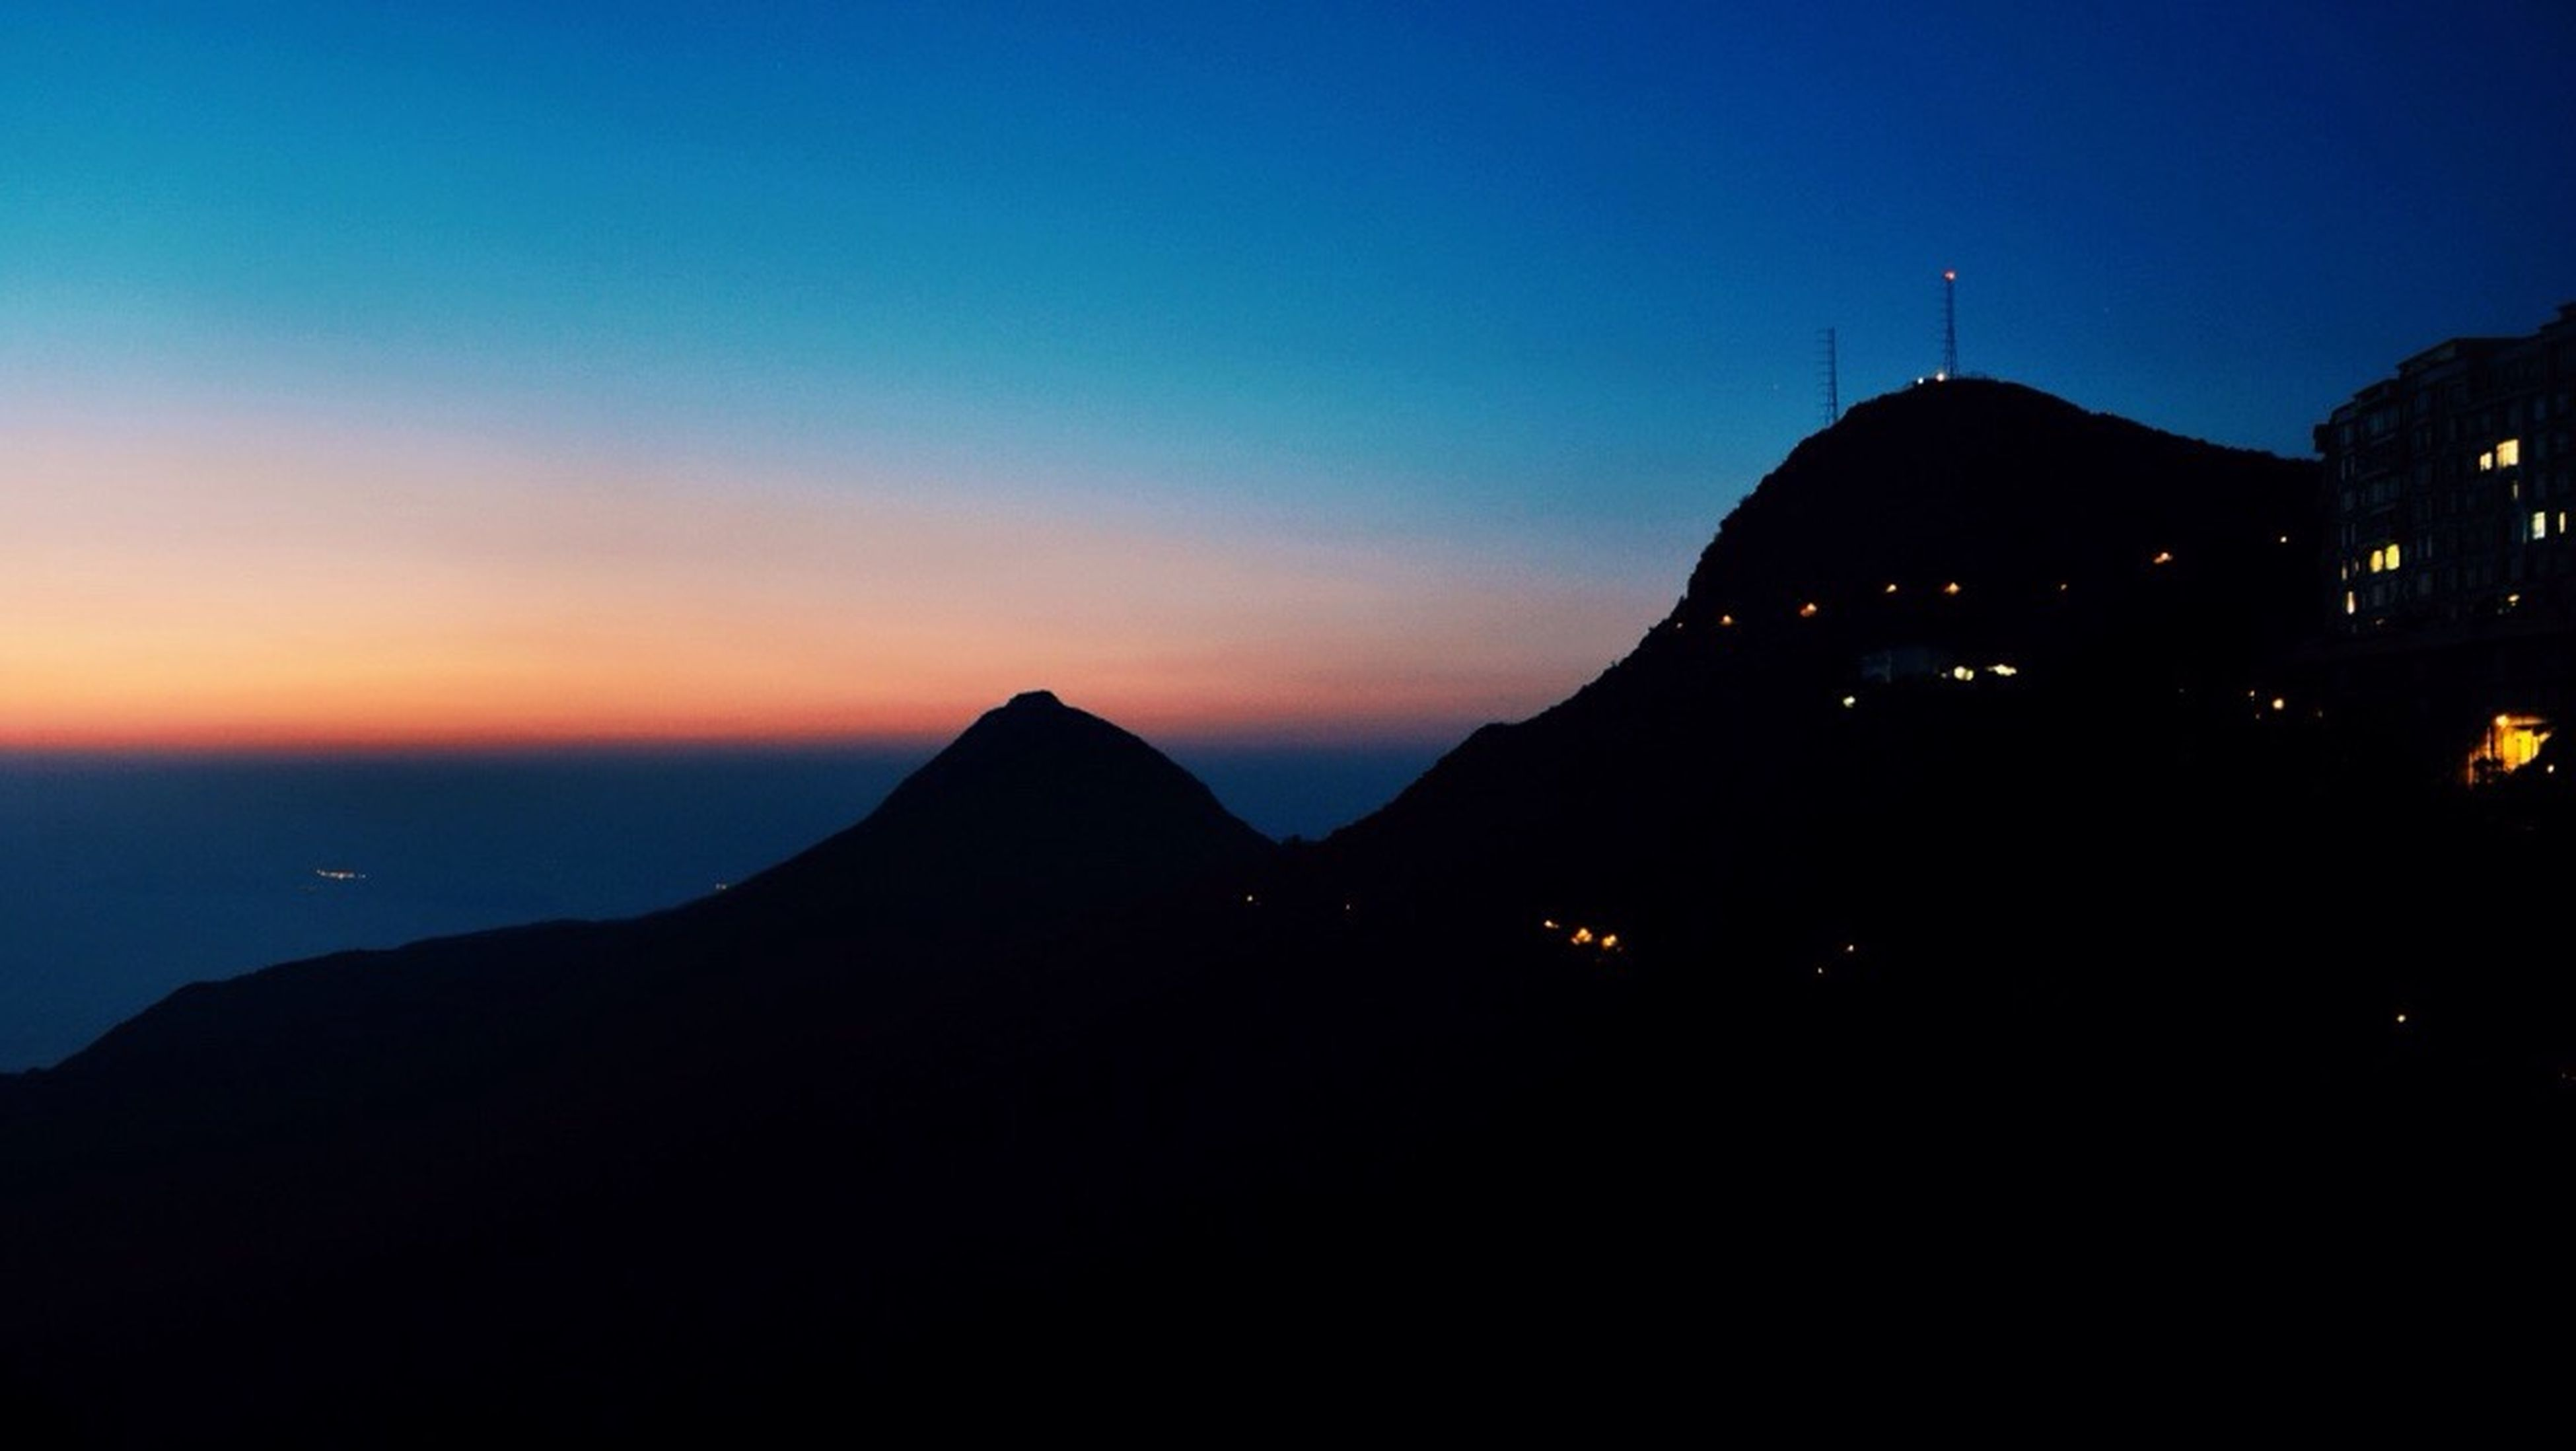 mountain, silhouette, sunset, scenics, mountain range, beauty in nature, tranquil scene, tranquility, dusk, copy space, sky, clear sky, nature, blue, idyllic, orange color, outdoors, illuminated, landscape, majestic